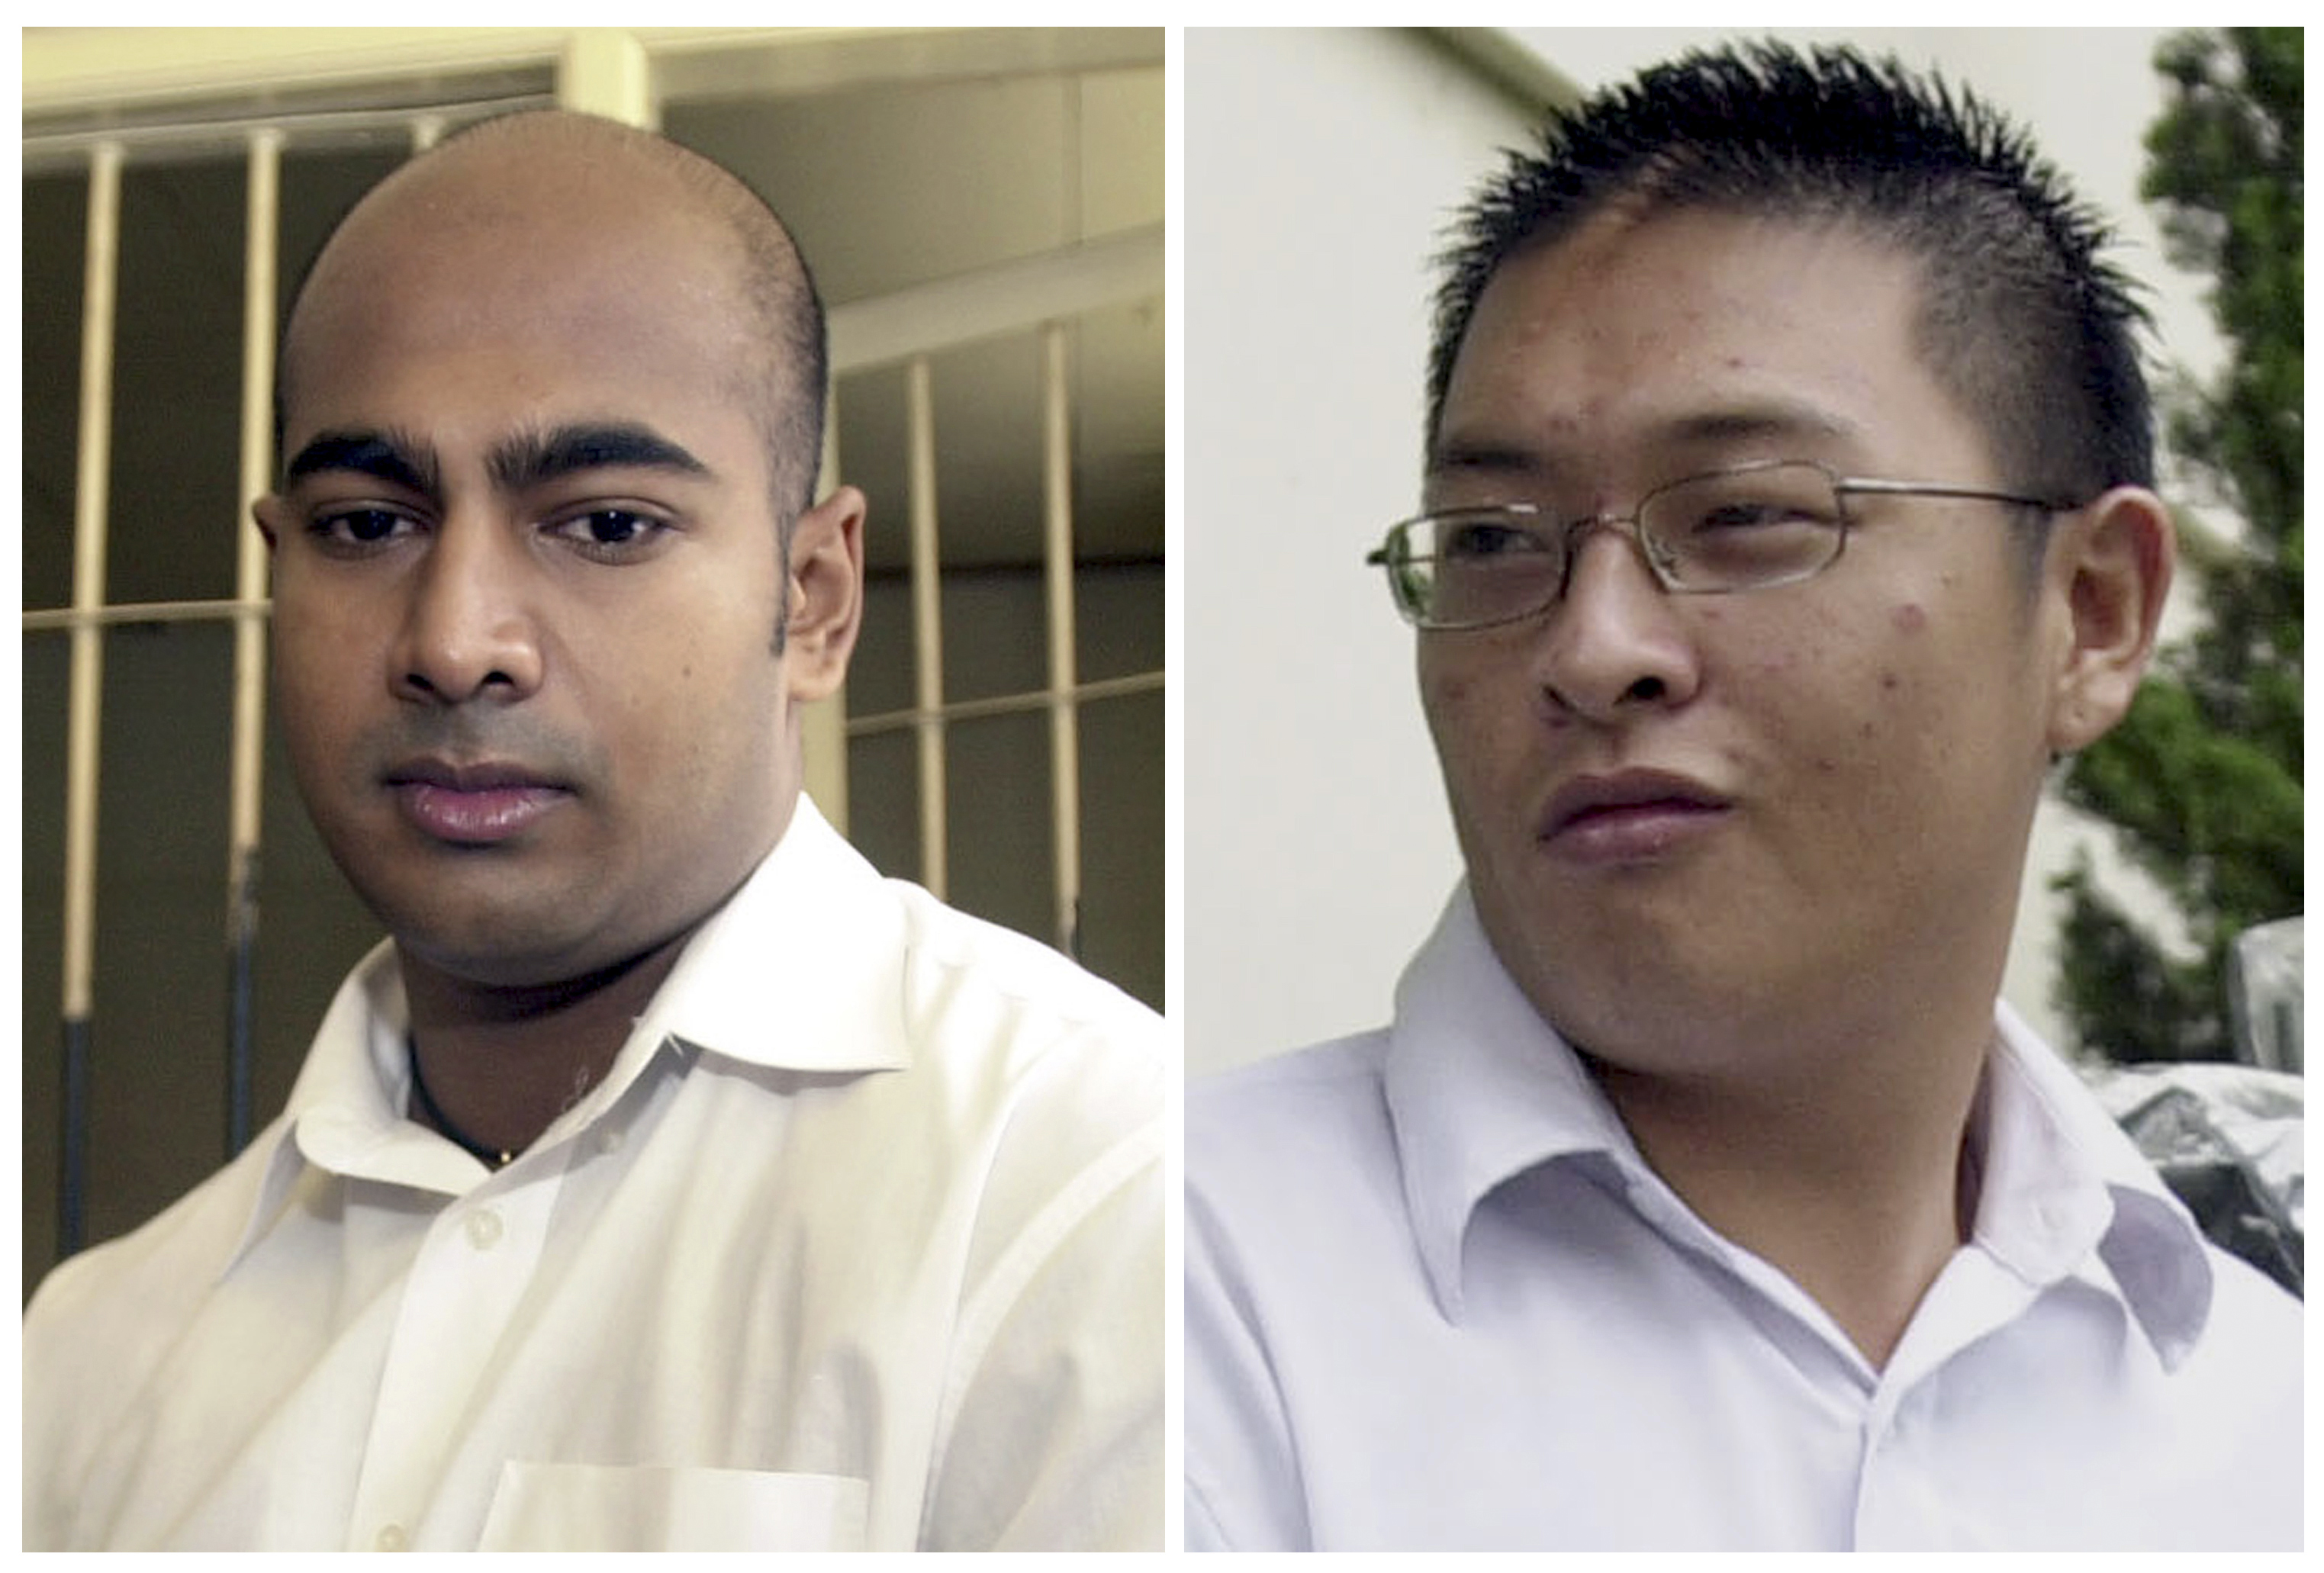 This combination of two photos from Jan. 24, 2006, left, and Jan. 26, 2006, shows Australian drug traffickers Myuran Sukumaran, left, and Andrew Chan during their trial in Bali, Indonesia